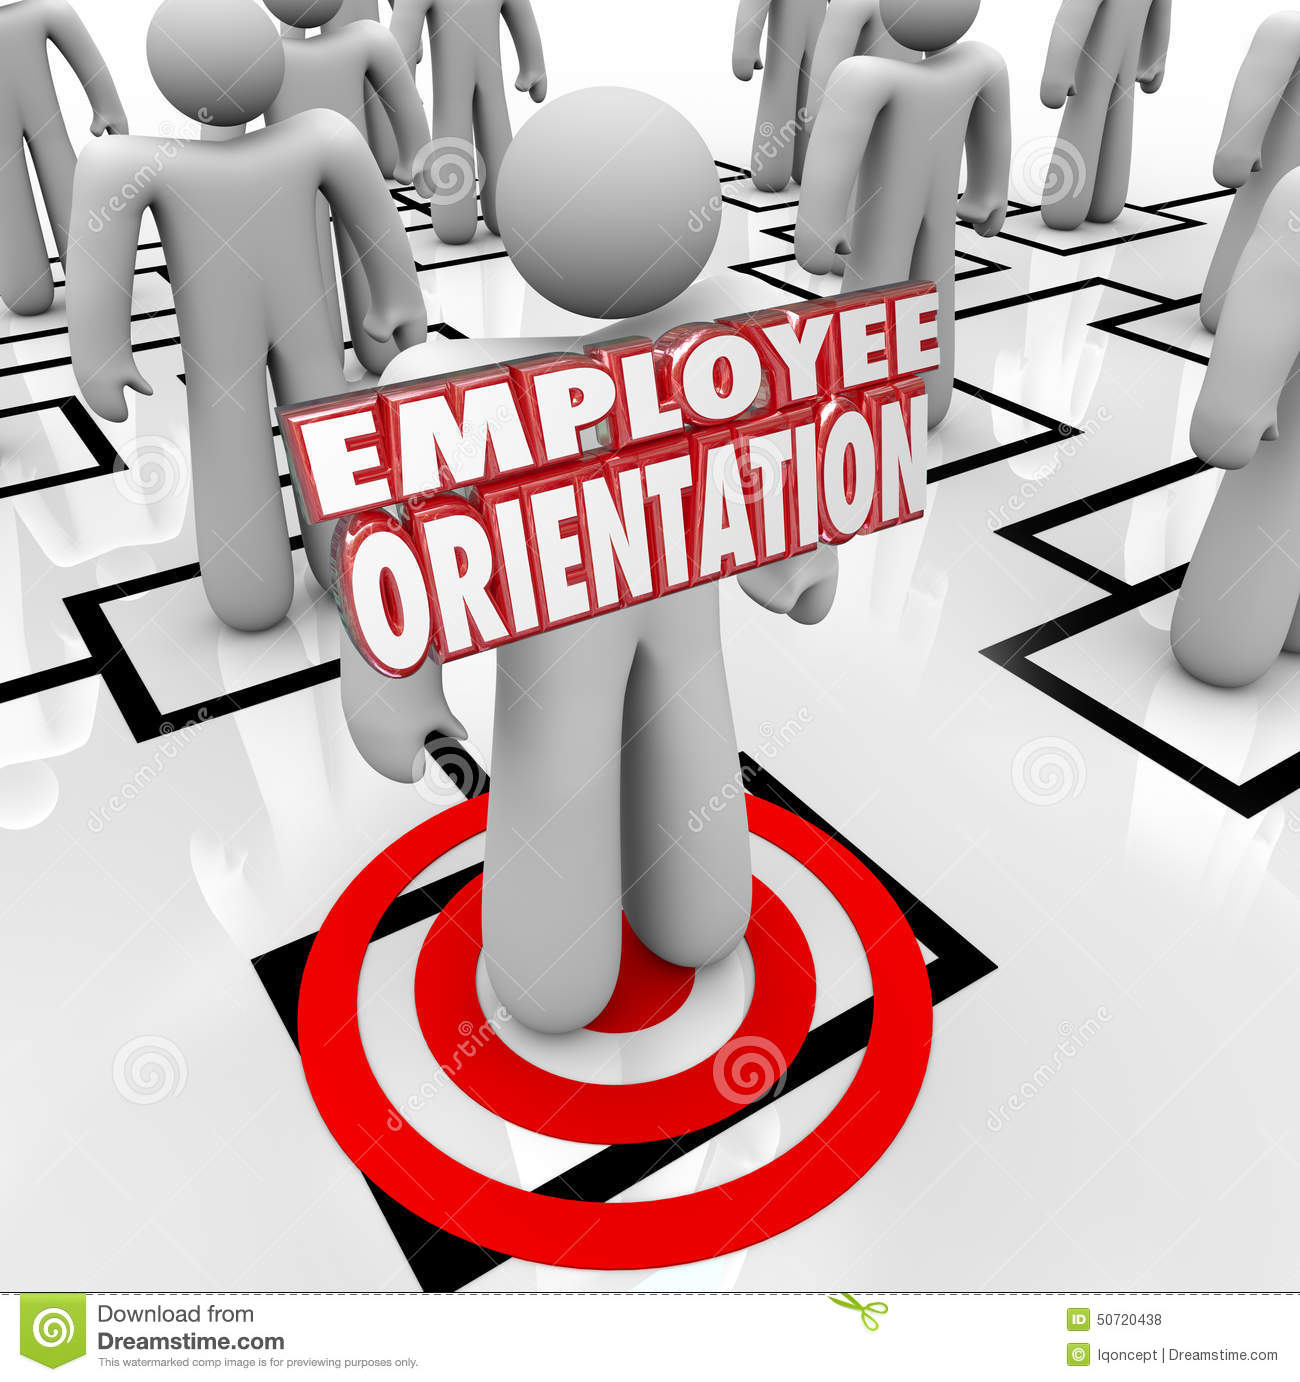 Employee Orientation Words New Worker Organization Chart ...